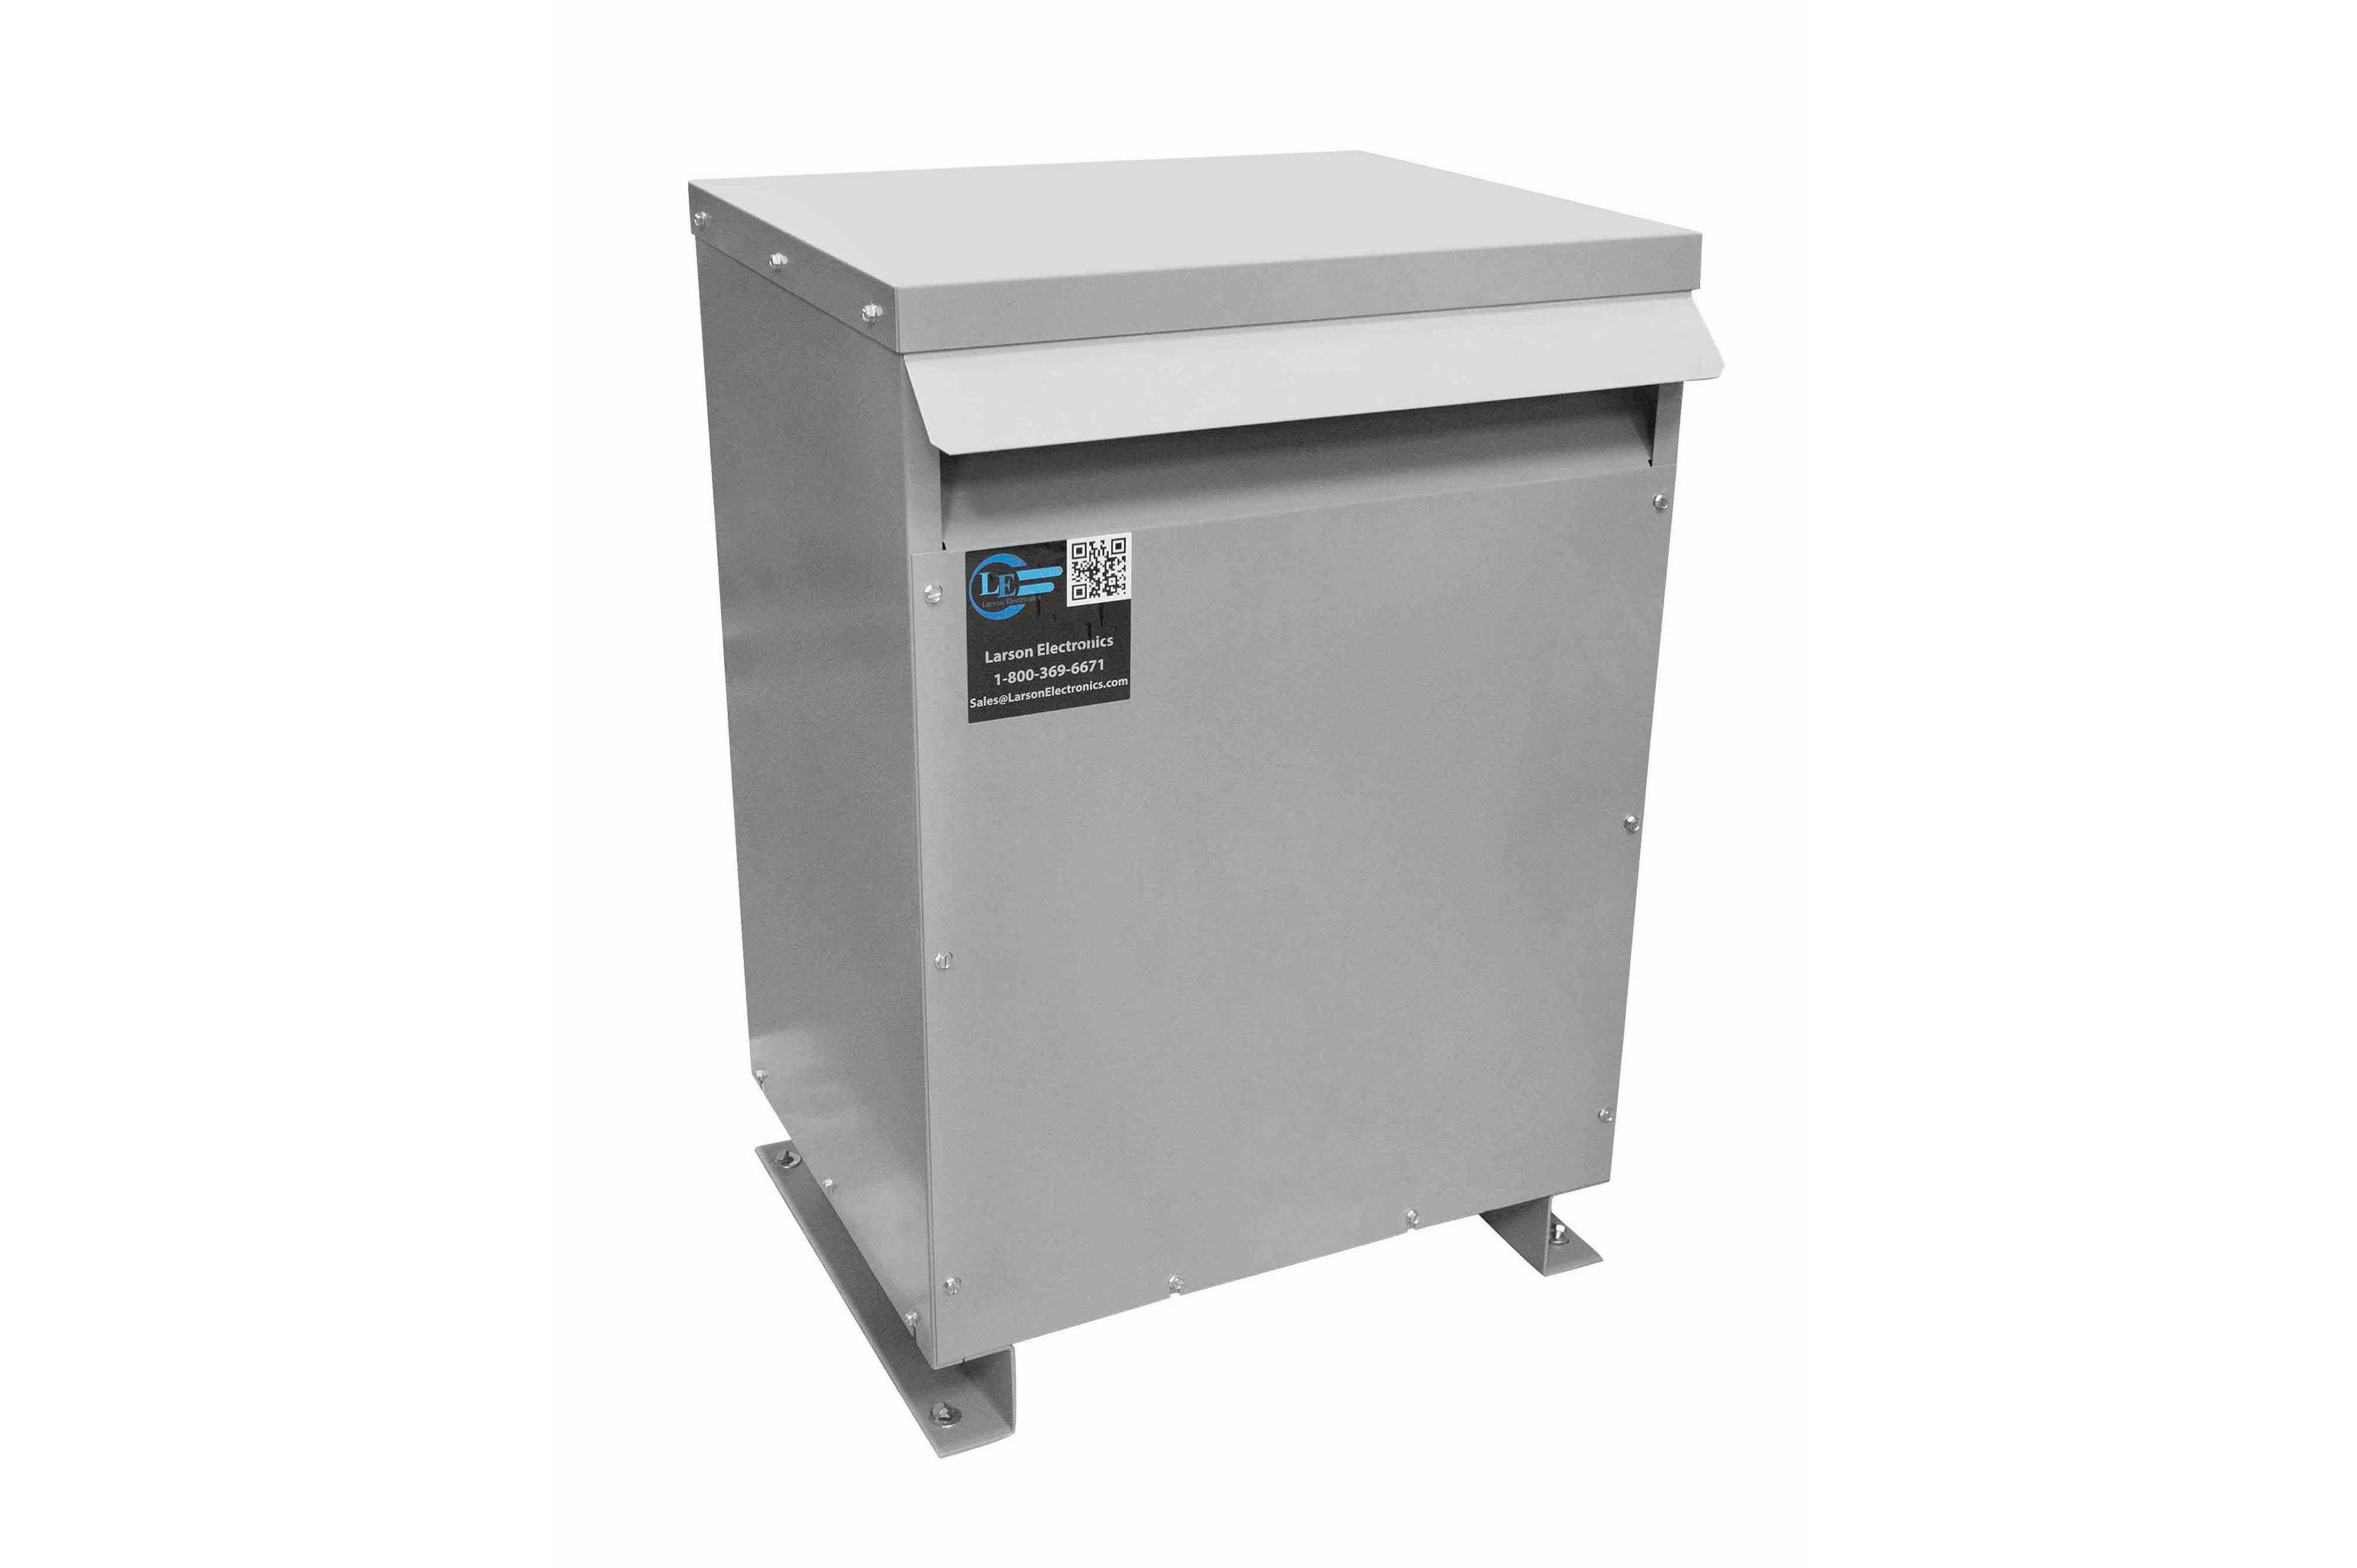 400 kVA 3PH Isolation Transformer, 600V Wye Primary, 380Y/220 Wye-N Secondary, N3R, Ventilated, 60 Hz